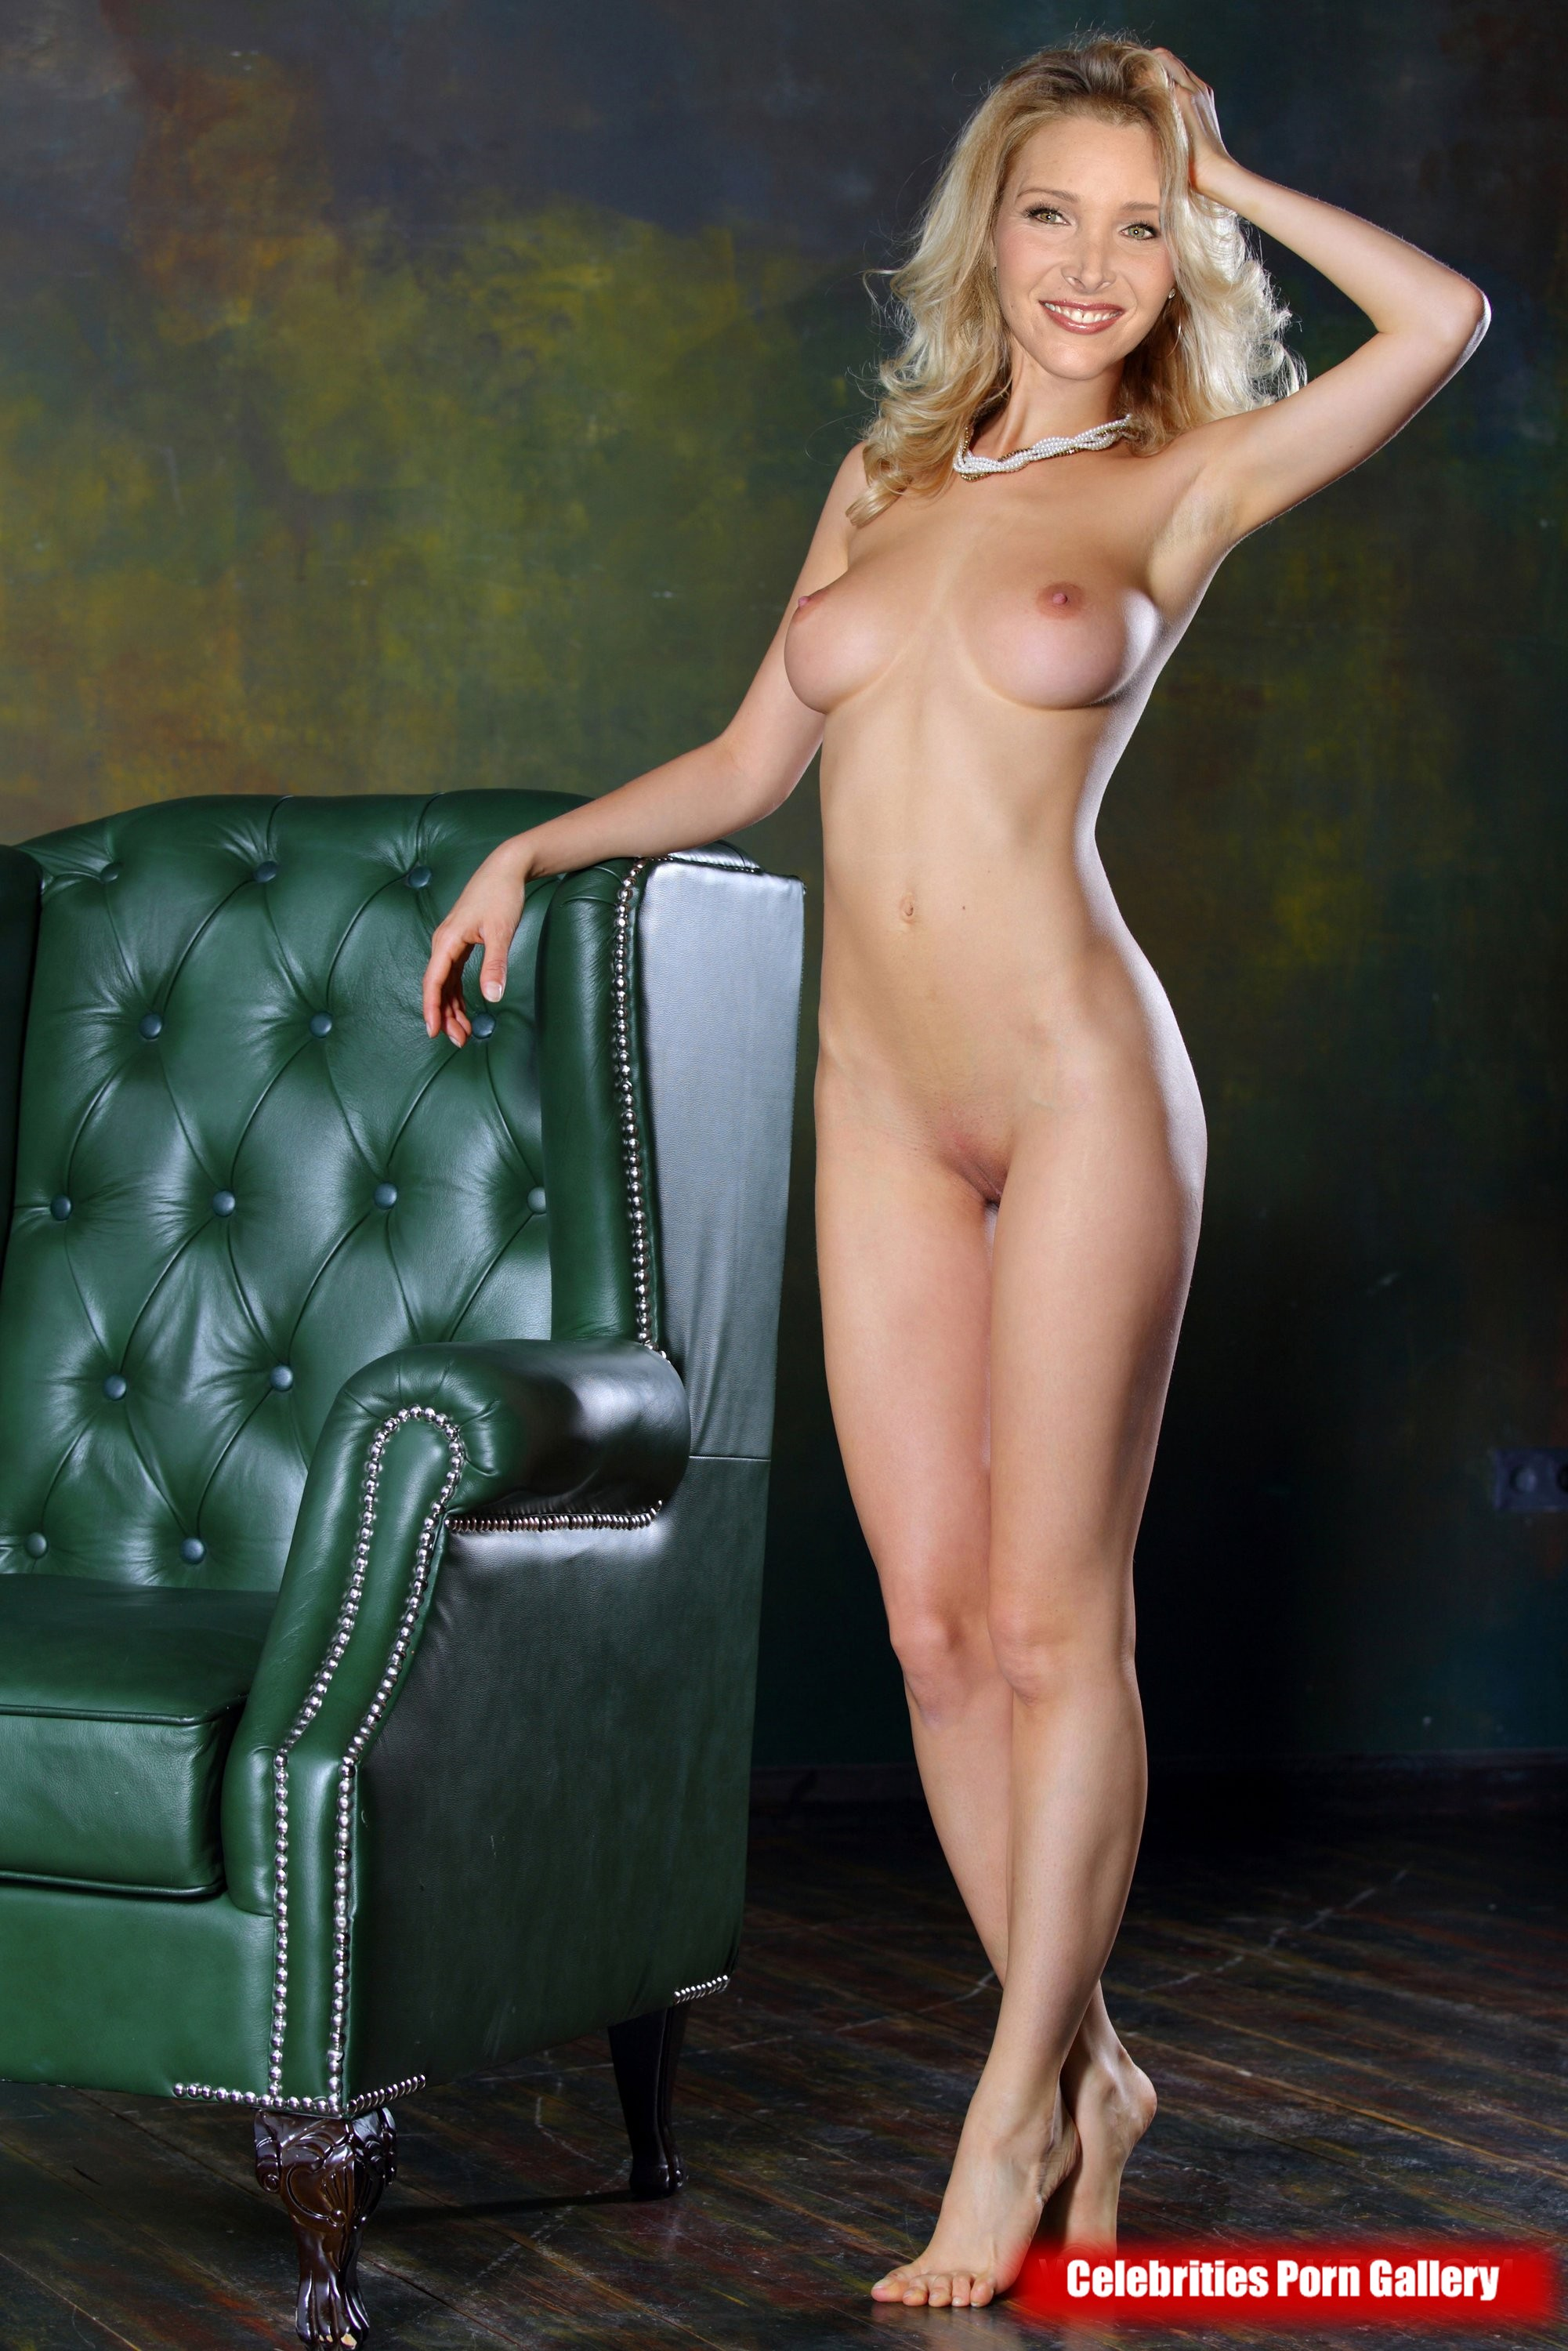 nude pictures of lisa